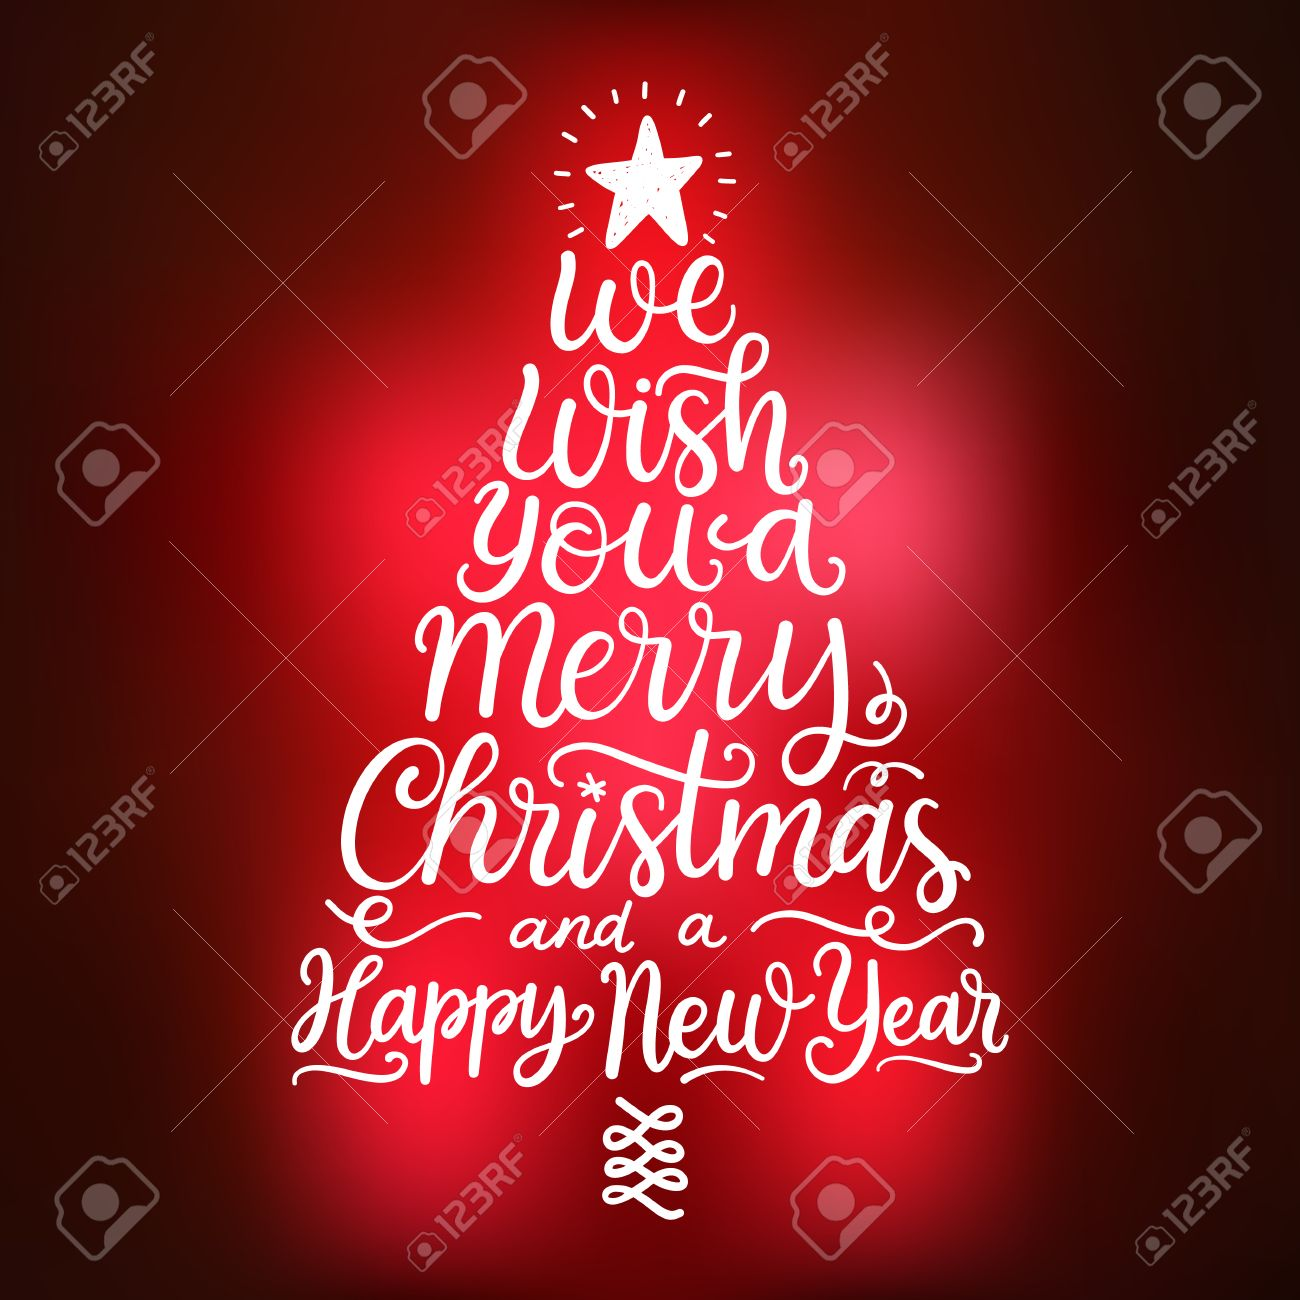 vector we wish you a merry christmas and a happy new year hand drawn lettering winter holidays greeting card